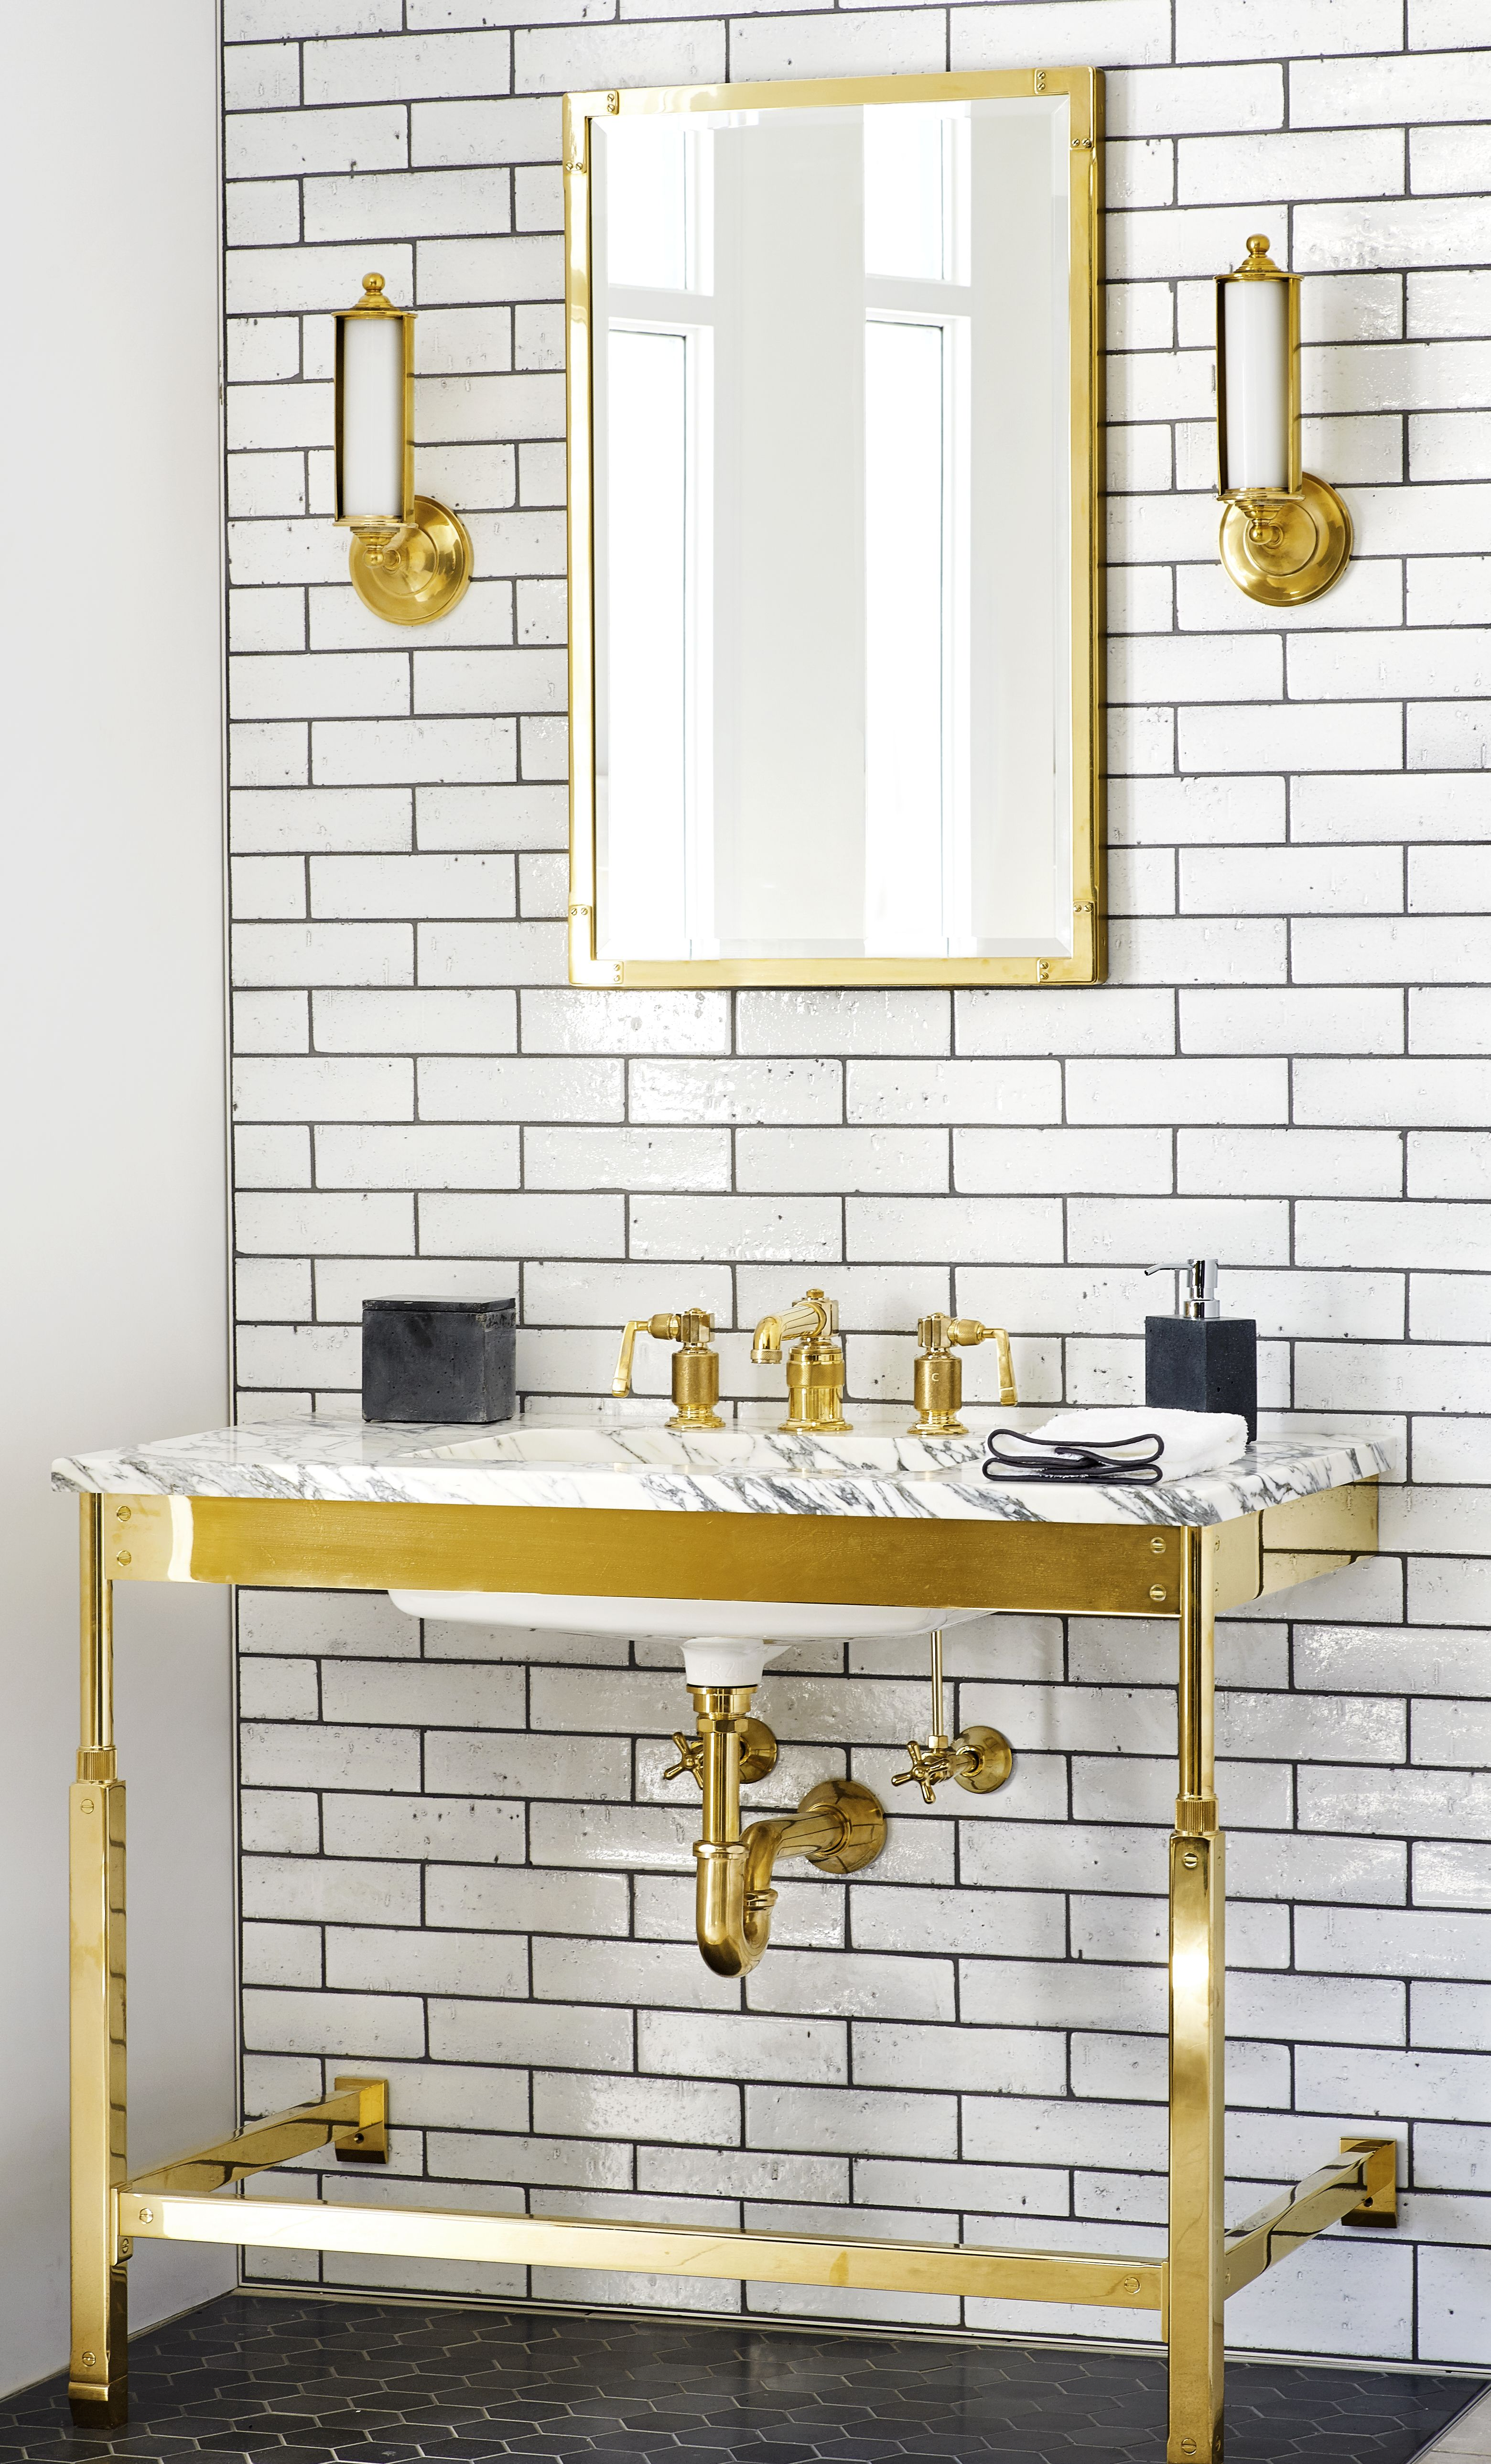 R W Atlas Washstand And Faucet Classic Bathroom Design Brass Bathroom Faucets White Bathroom Tiles